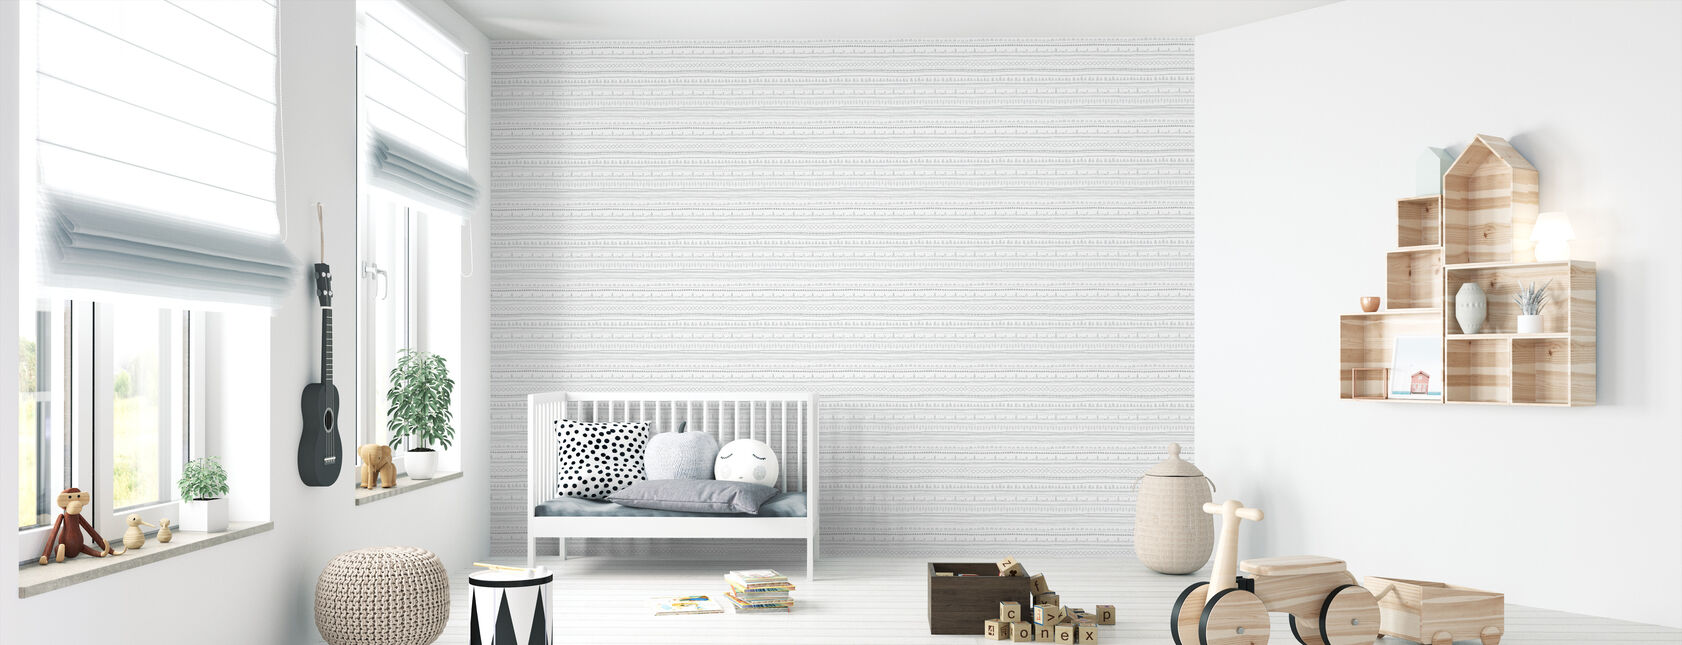 Nordic Folk Ash - Wallpaper - Nursery